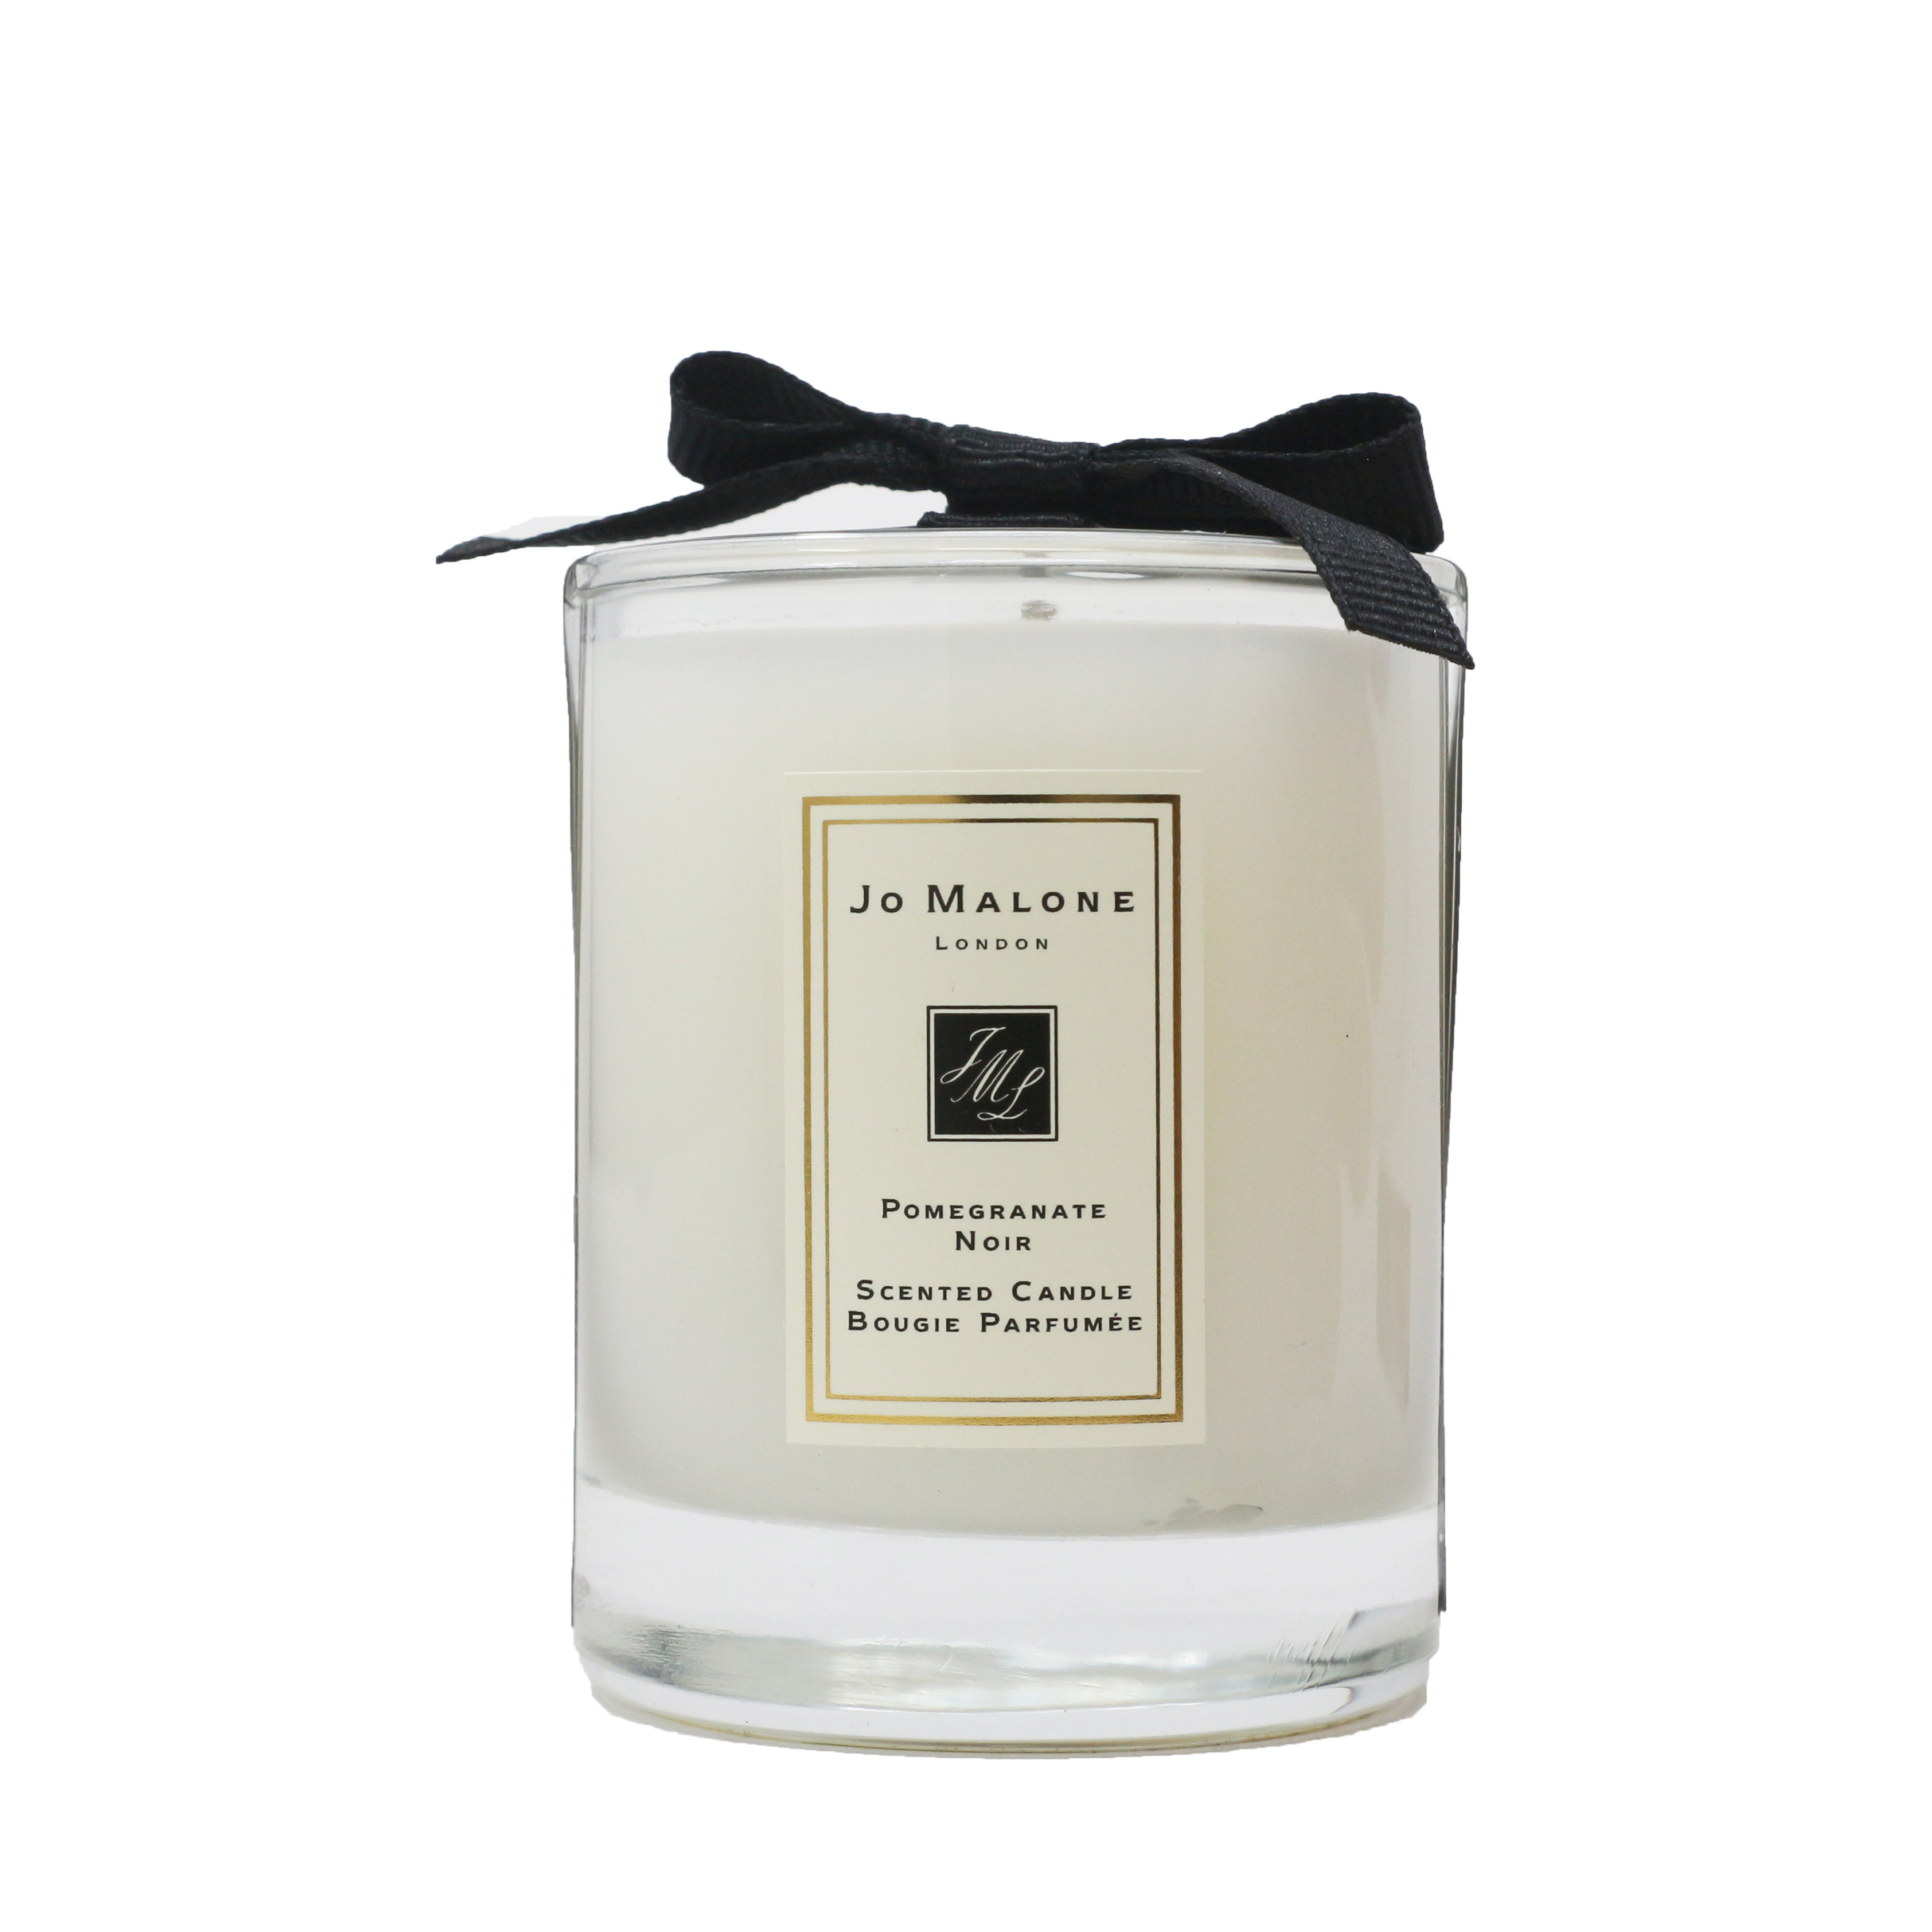 Jo Malone Pomegranate Noir Scented Candle 2oz60g New Ebay